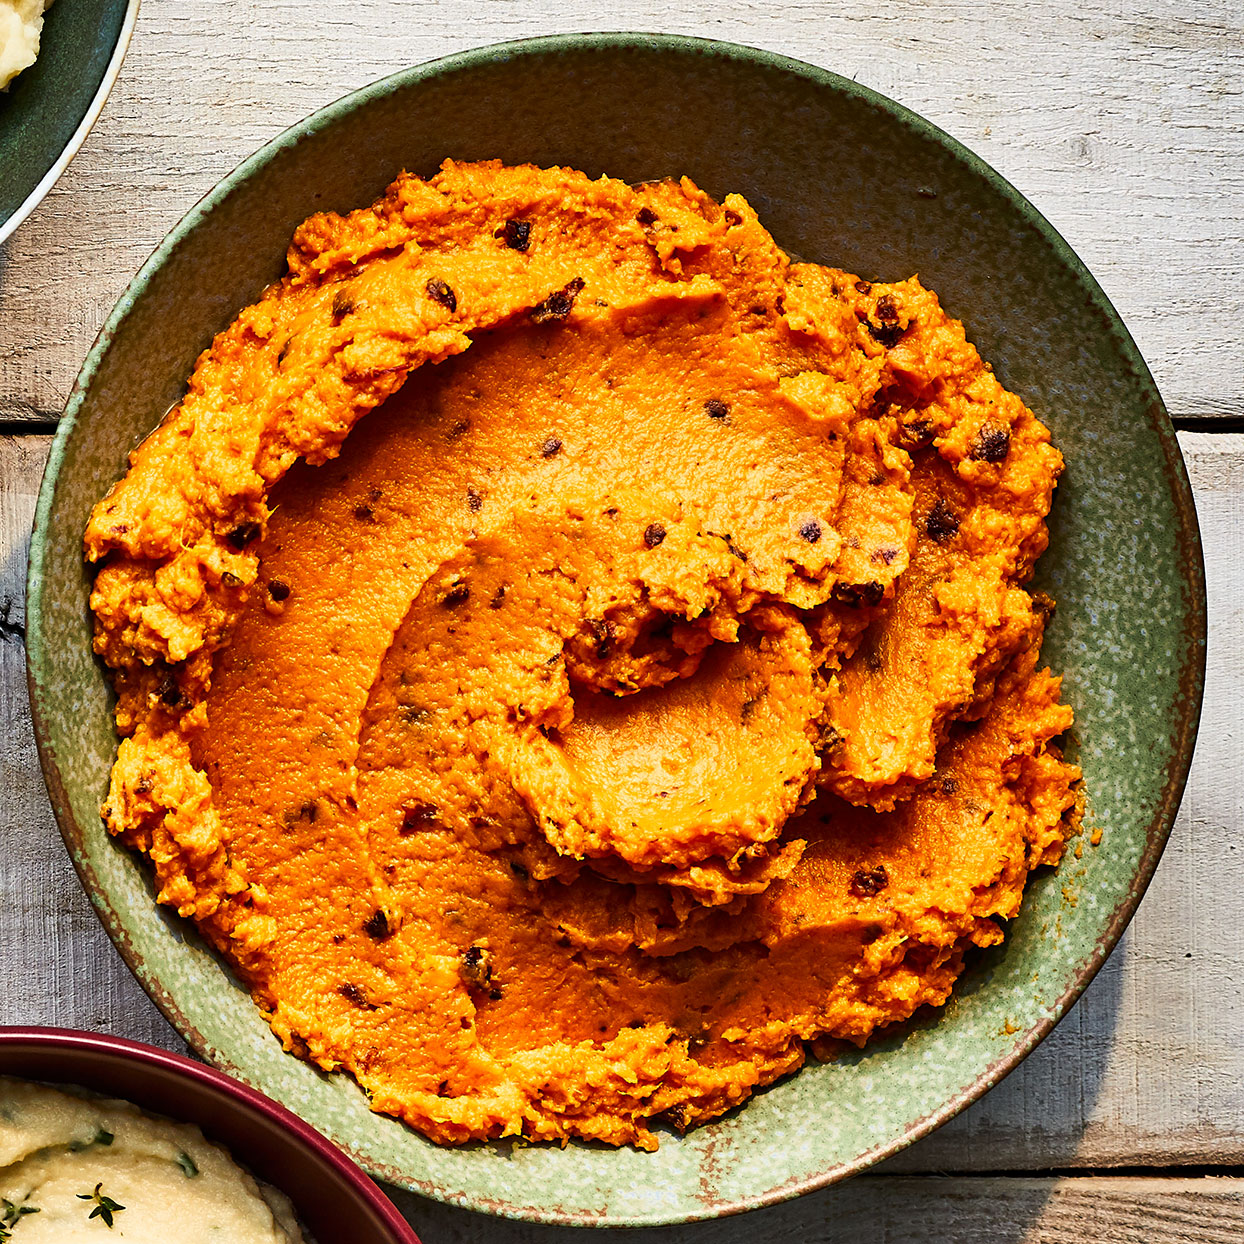 These healthy mashed sweet potatoes owe their kick to the chipotle peppers. Want it spicier? Add another tablespoon to your mash. You can even use chipotle chile powder to punch up the heat—use a couple teaspoons instead of the full 3 tablespoons of chipotles in adobo.